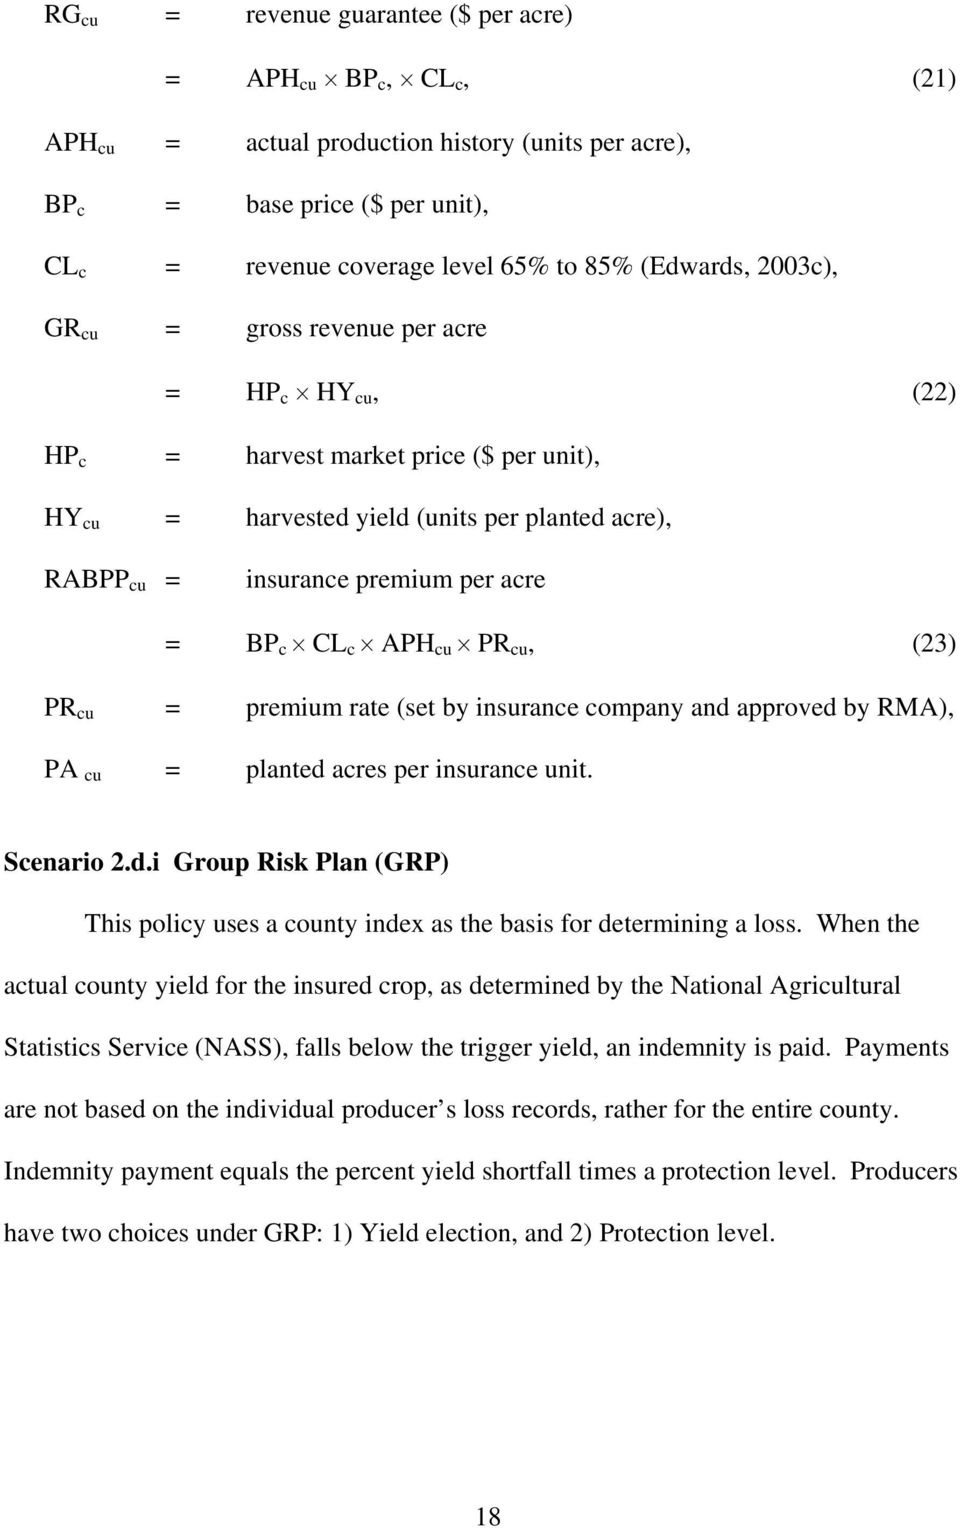 cu PR cu, (23) PR cu = premium rate (set by isurace compay ad approved by RMA), PA cu = plated acres per isurace uit. Sceario 2.d.i Group Risk Pla (GRP) This policy uses a couty idex as the basis for determiig a loss.